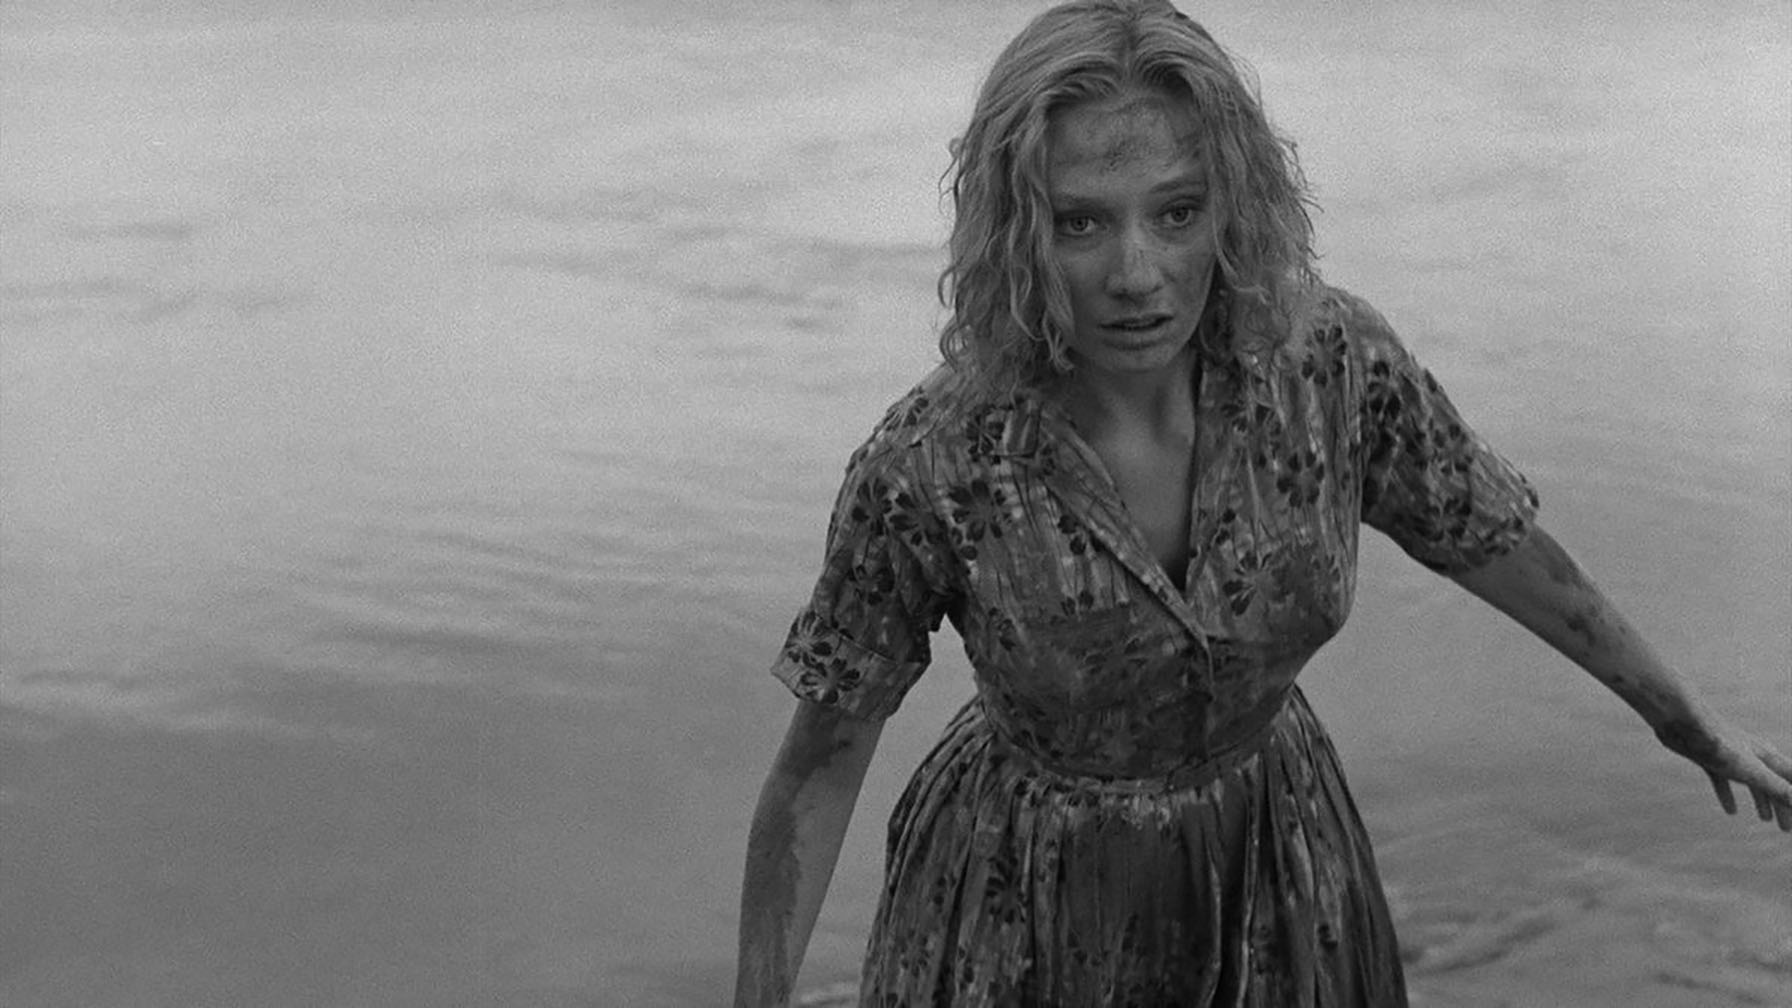 Medium close shot of a young, blond white woman in a damp, muddy midcentury-style dress stagger out of a lake